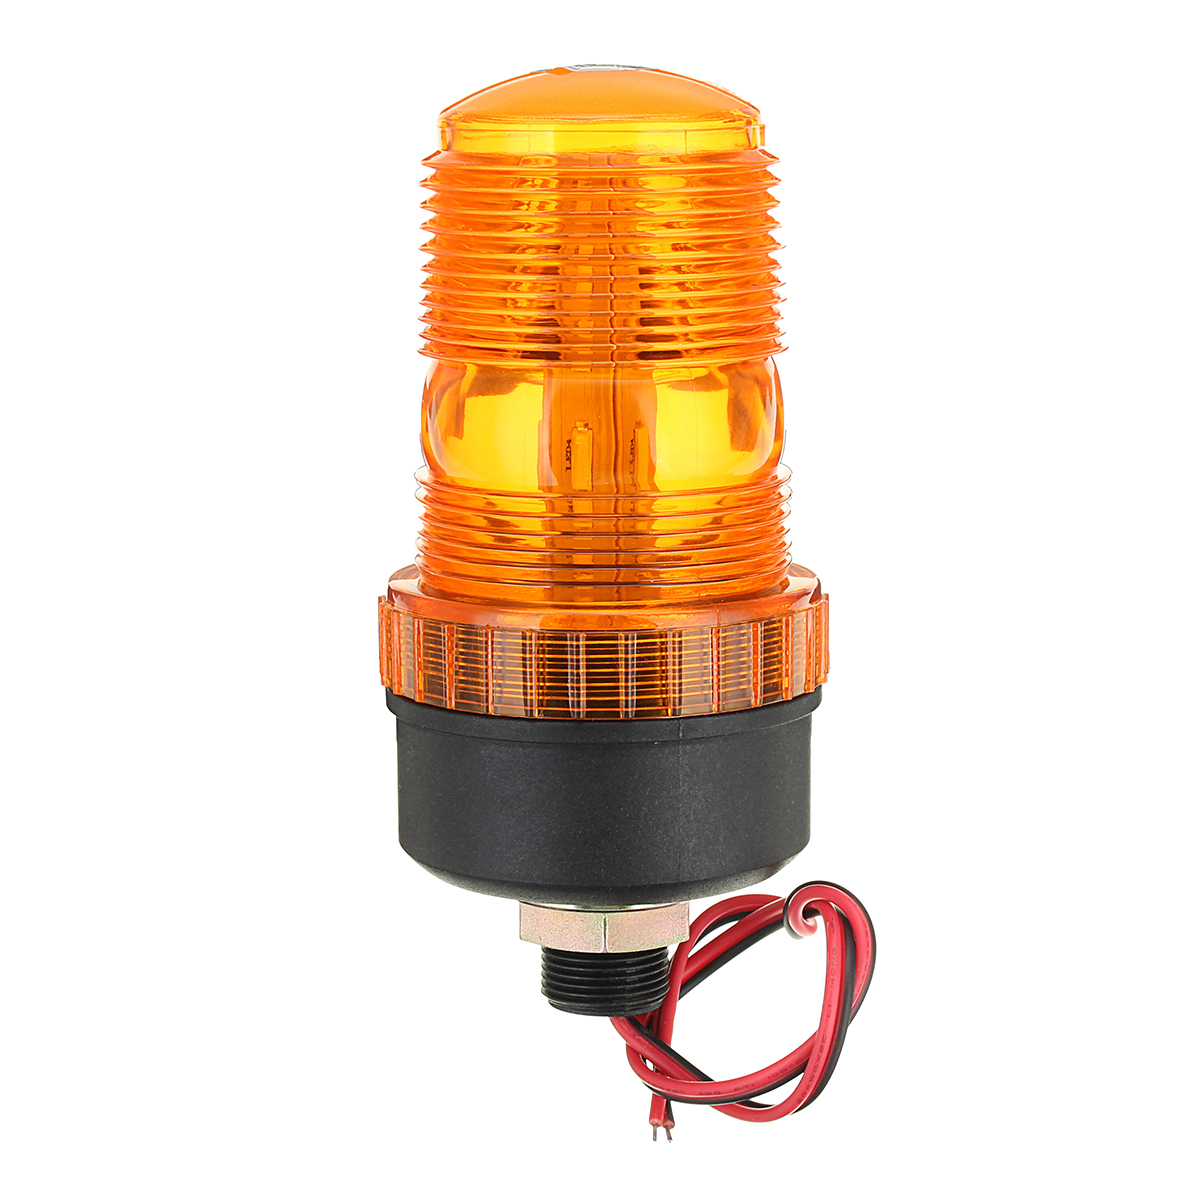 12V 24V LED Rotating Flashing Amber Beacon Flexible Strobe Tractor Warning Light Traffic Light Roadway Safety safurance led rotating flashing amber beacon flexible tractor warning light 12v 24v roadway safety